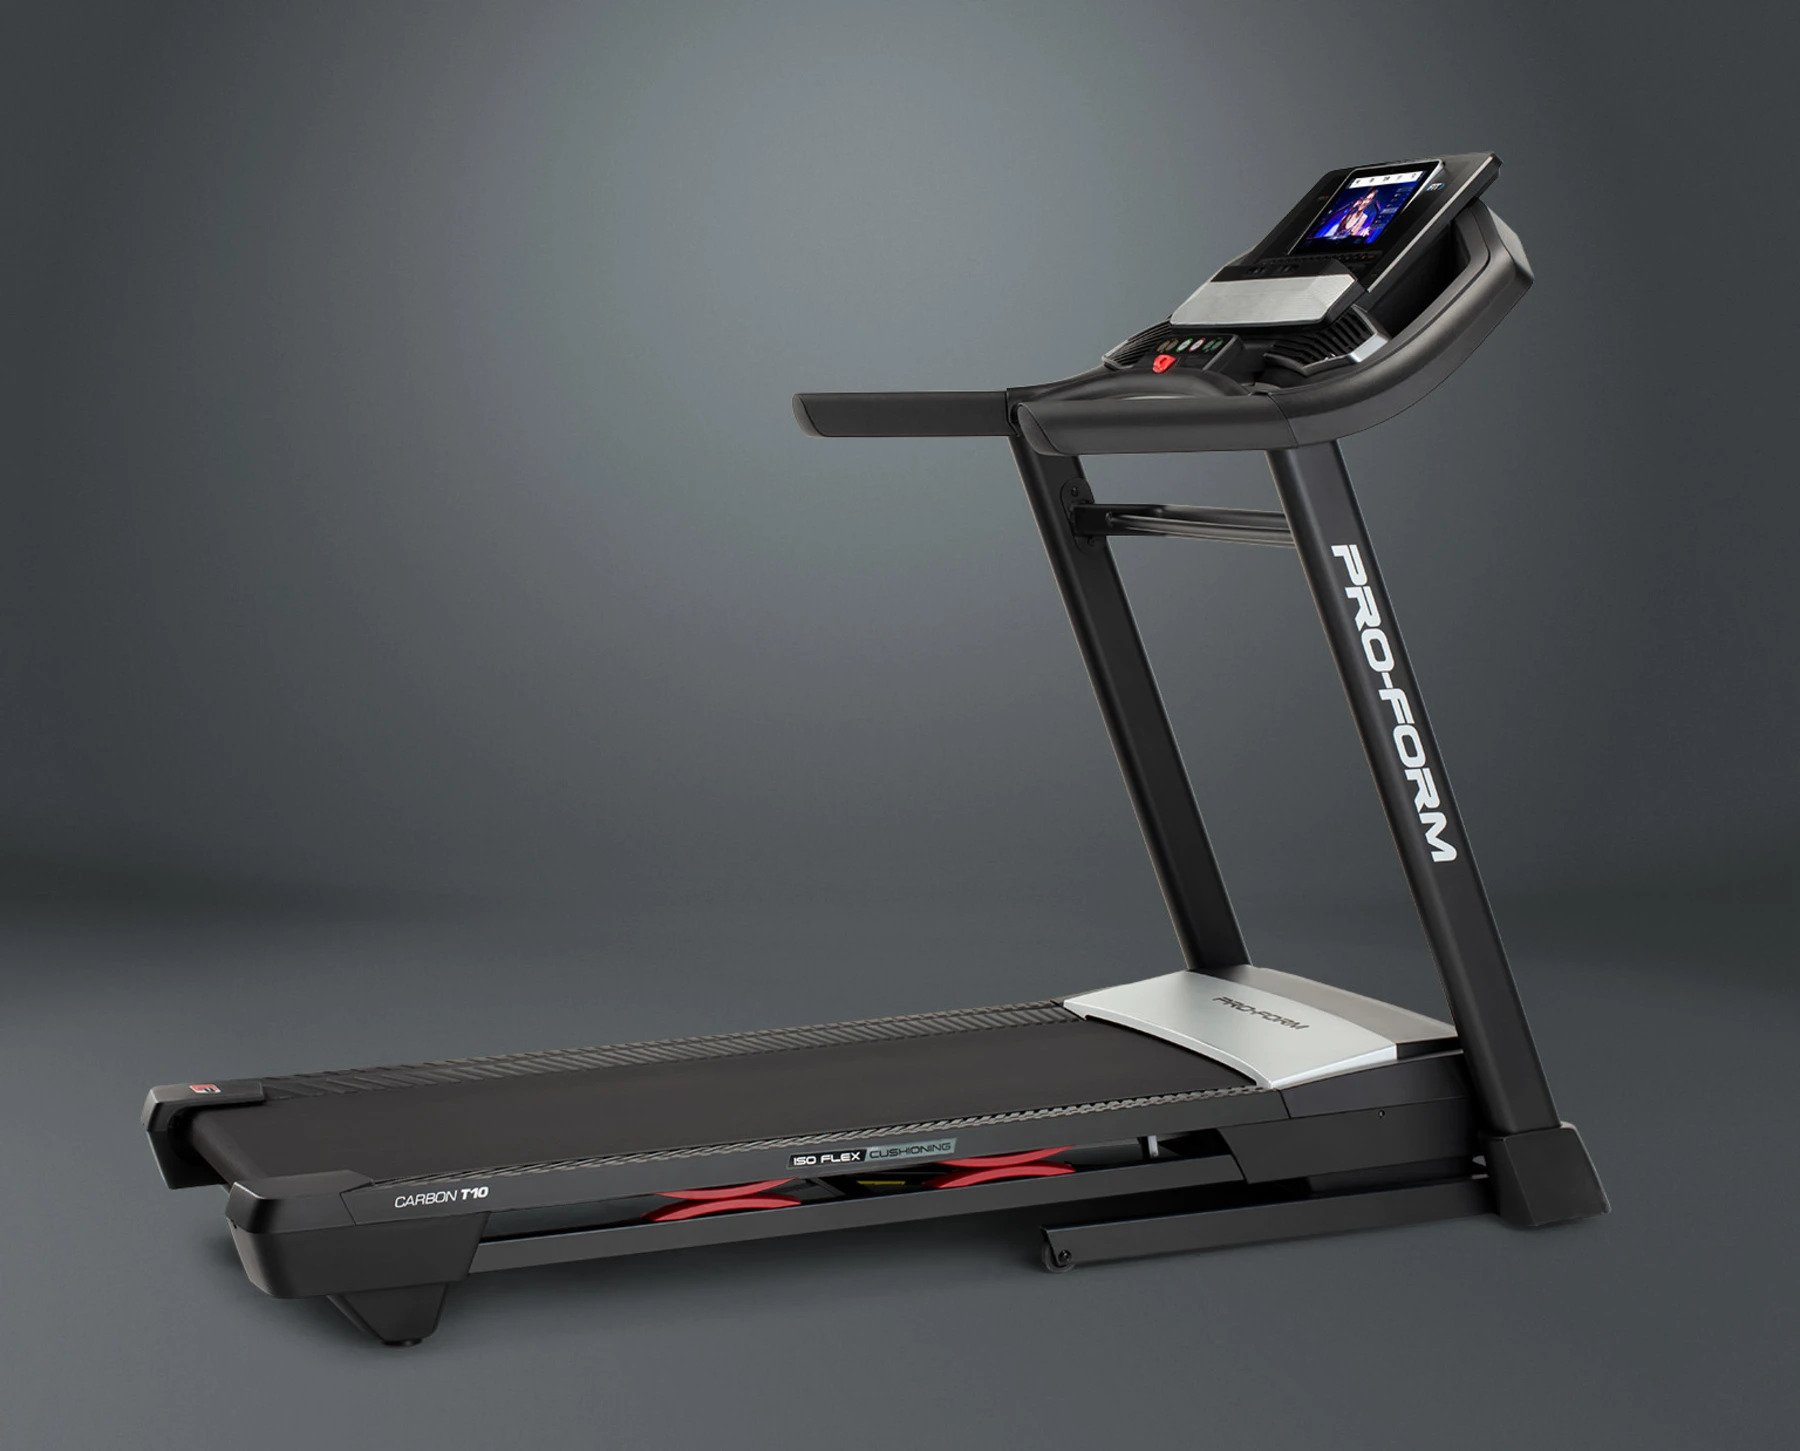 ProForm Carbon T10 With New iFit Console and Advanced Cushioning